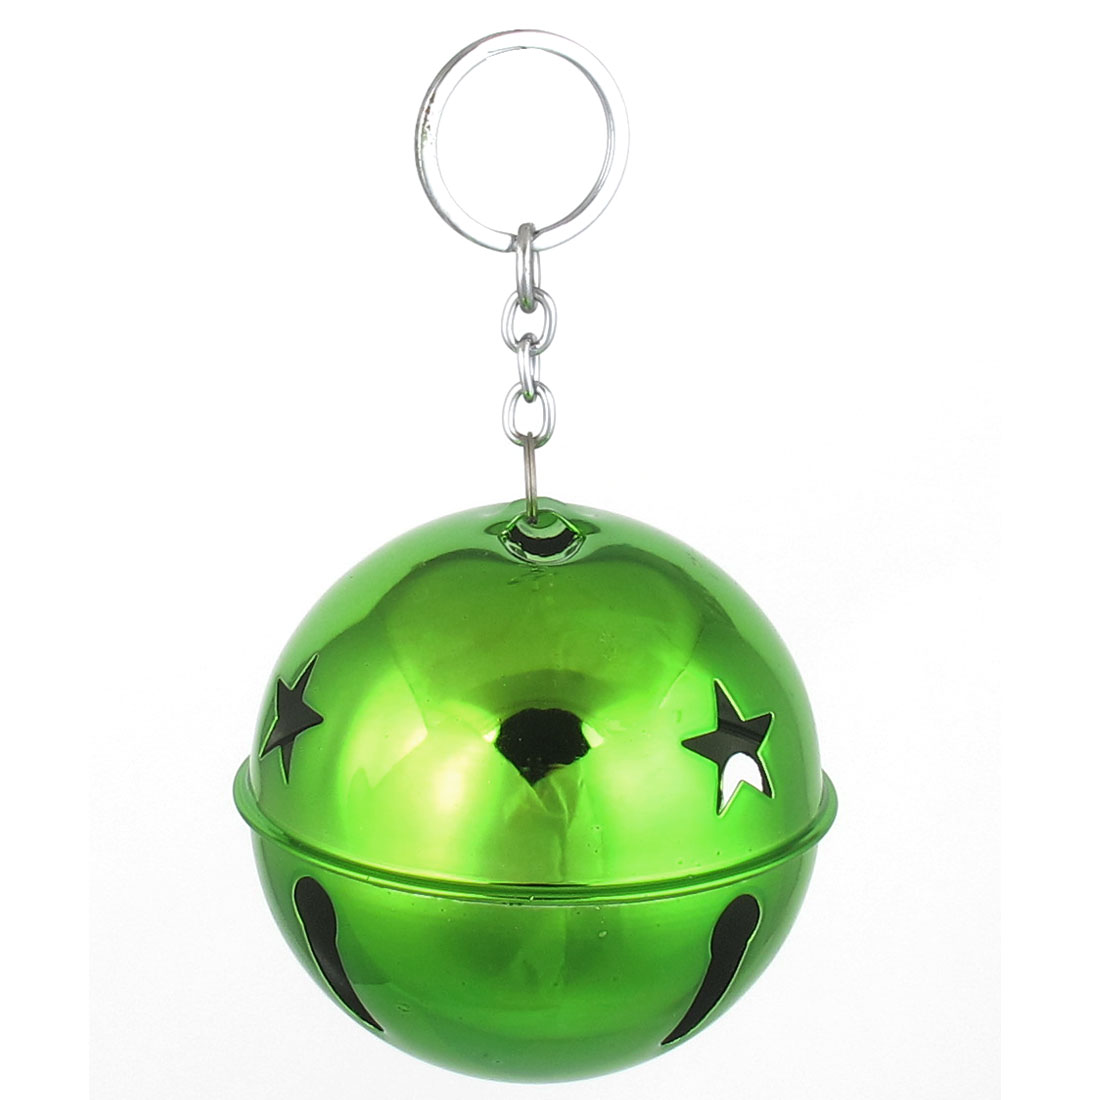 80mm Diameter Green Metal Keychain Split Star Hollow Out Design Ring Bell Ornament for Xmas Celebration Case Backpack Purse